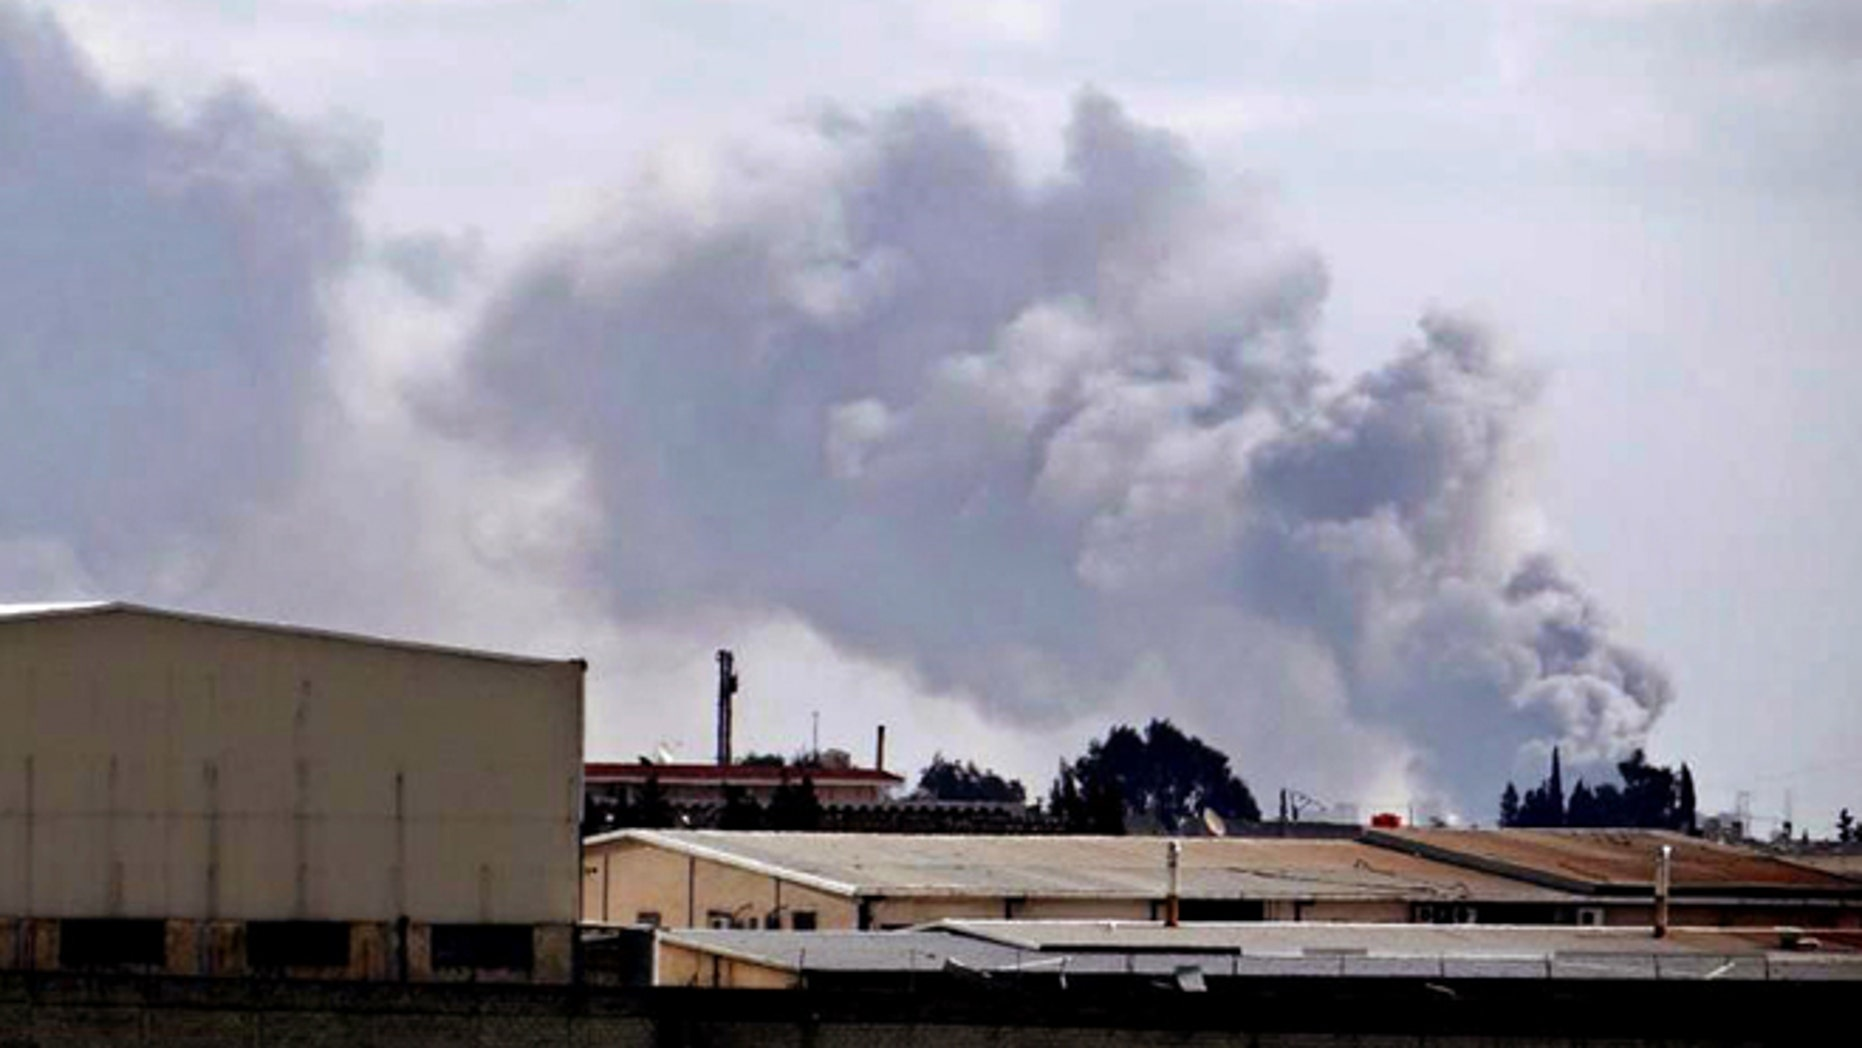 Feb. 12, 2013: Citizen journalism image provided by Aleppo Media Center AMC which has been authenticated based on its contents and other AP reporting, shows smoke rises from Aleppo International Airport, Syria.